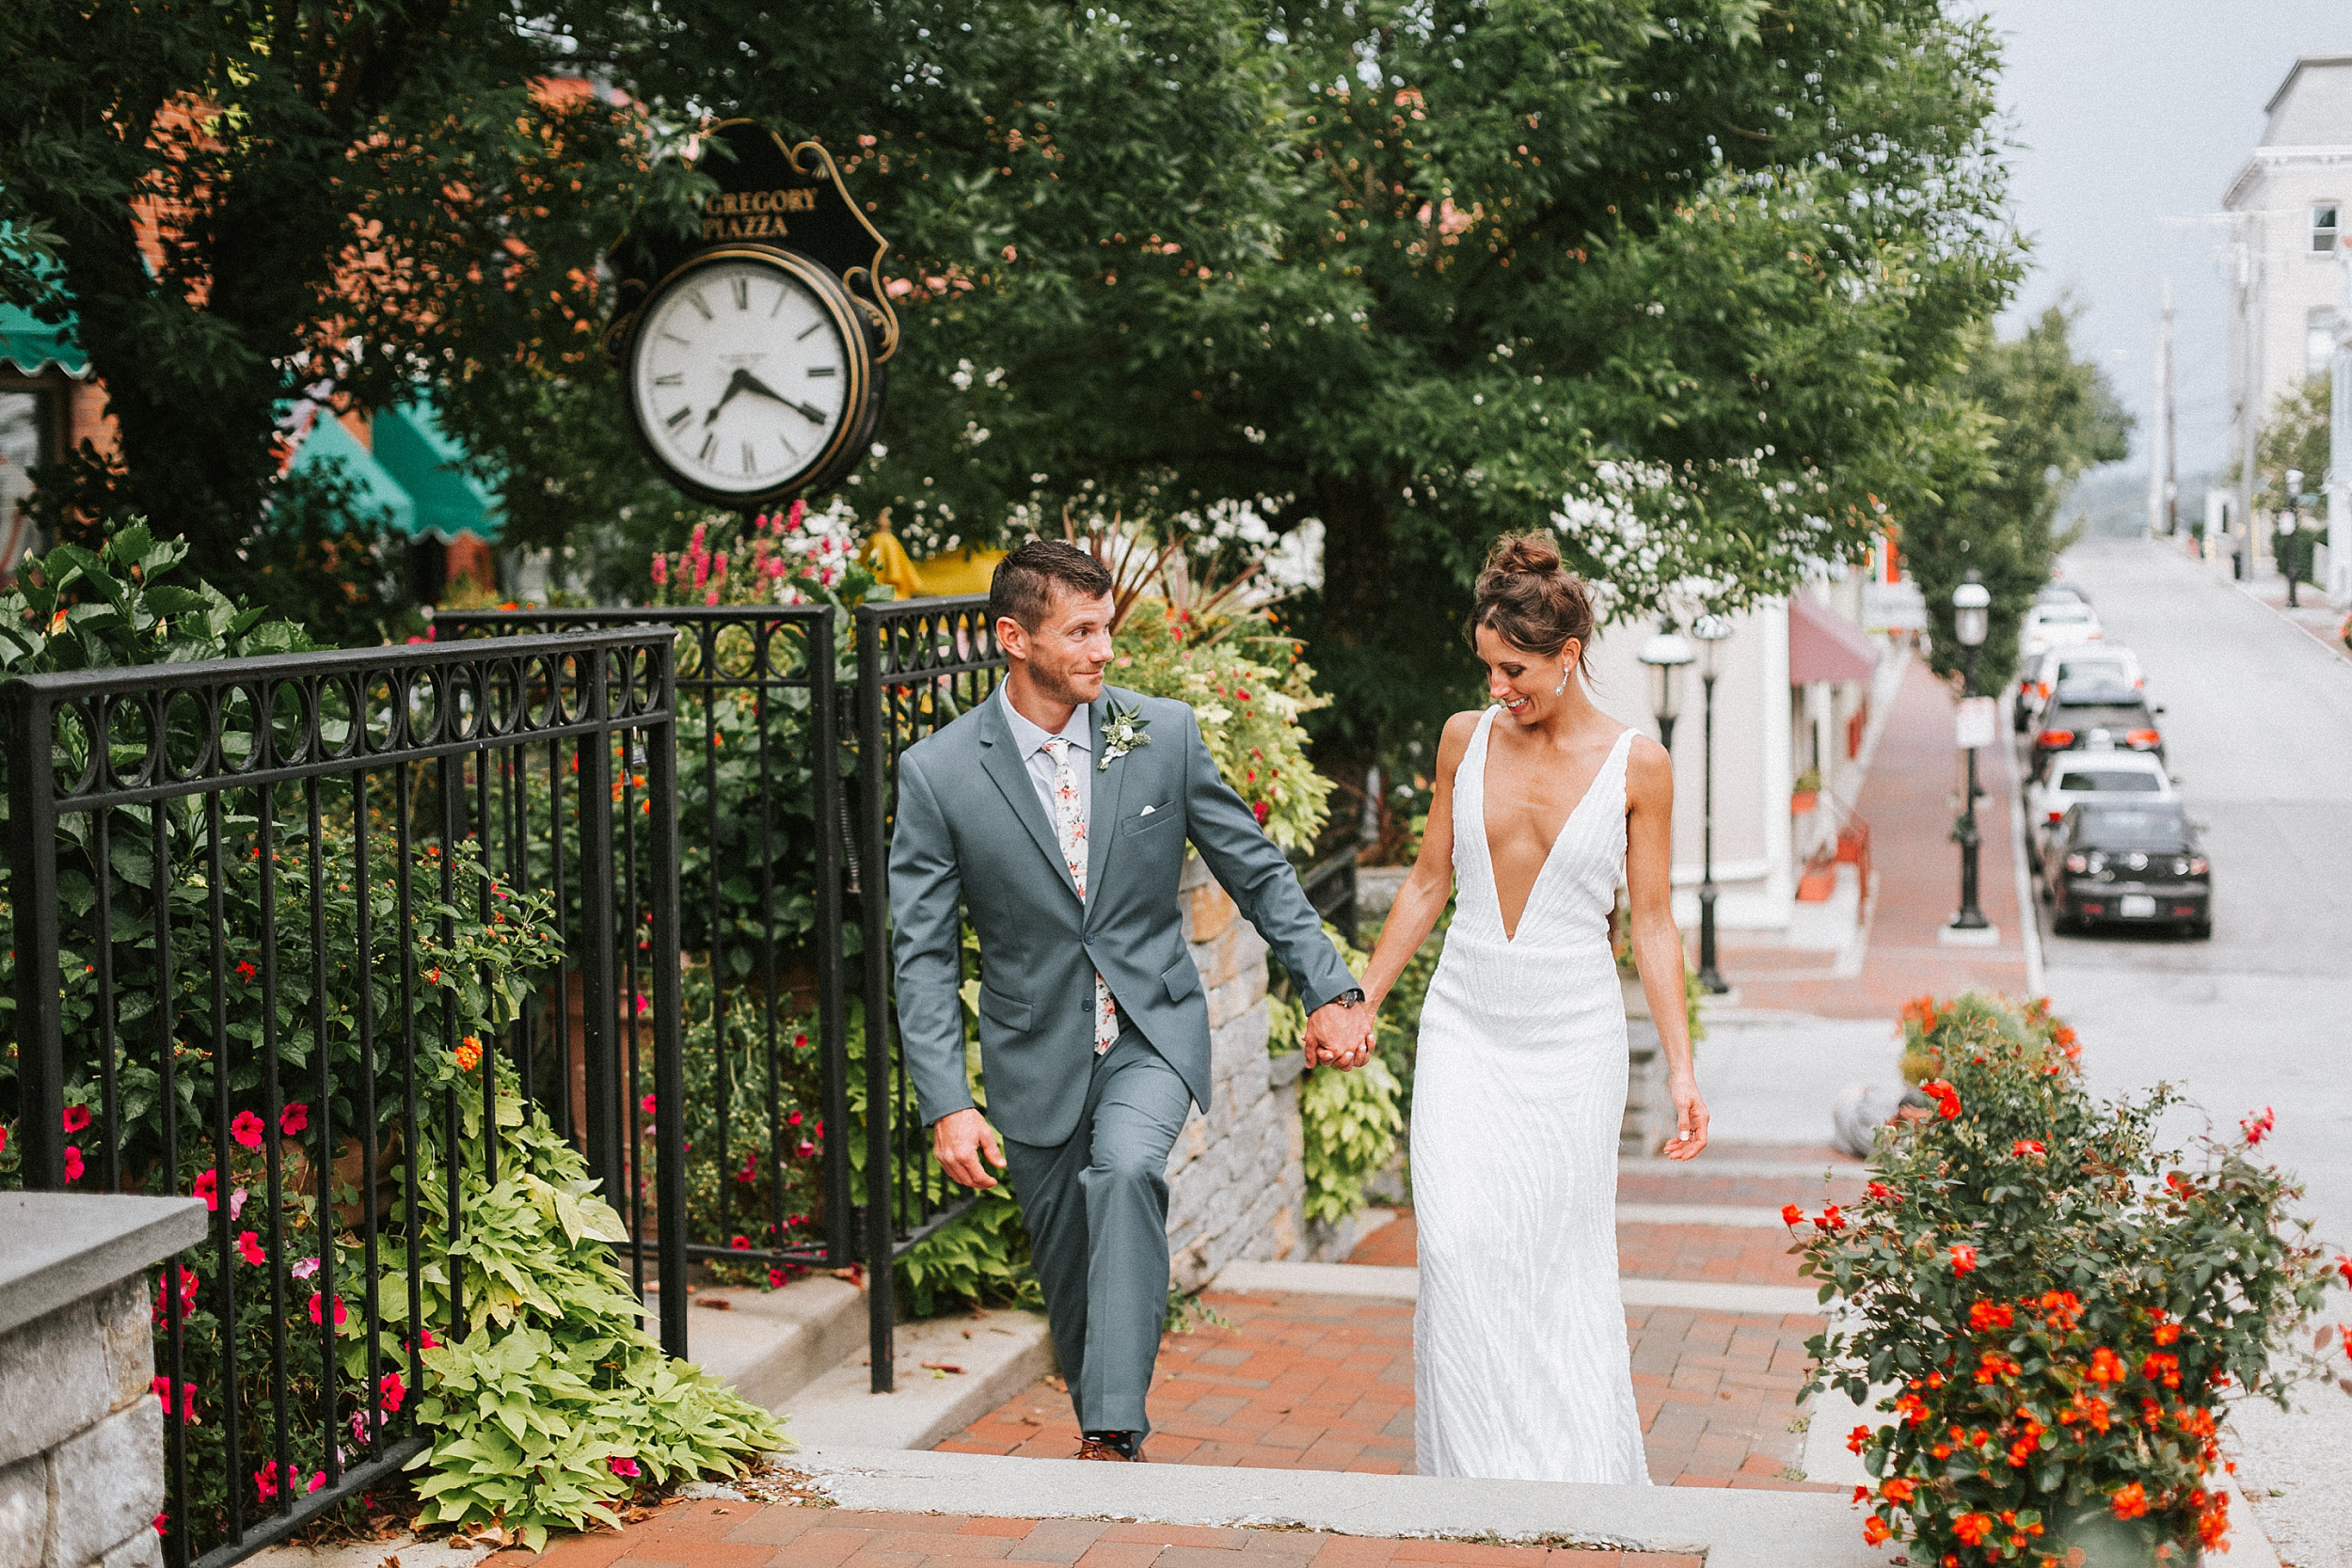 Brooke Townsend Photography - Cincinnati Wedding Photographer (138 of 170).jpg